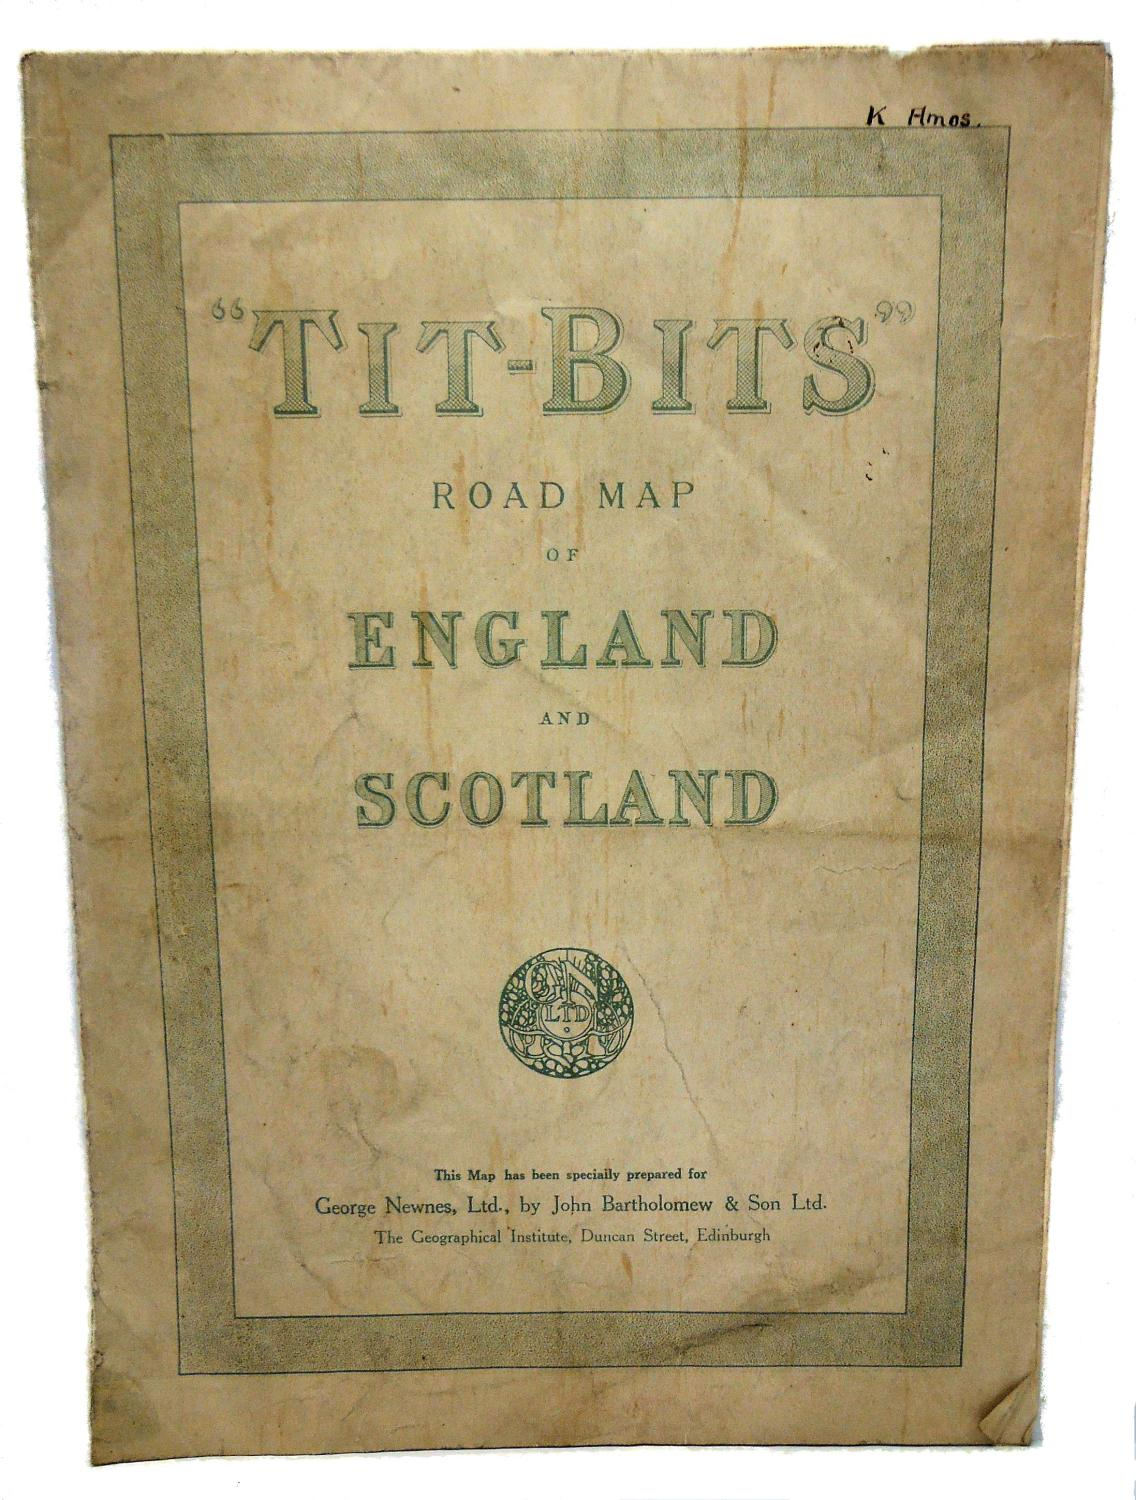 Road Map Of England And Scotland.Tit Bits Road Map Of England And Scotland